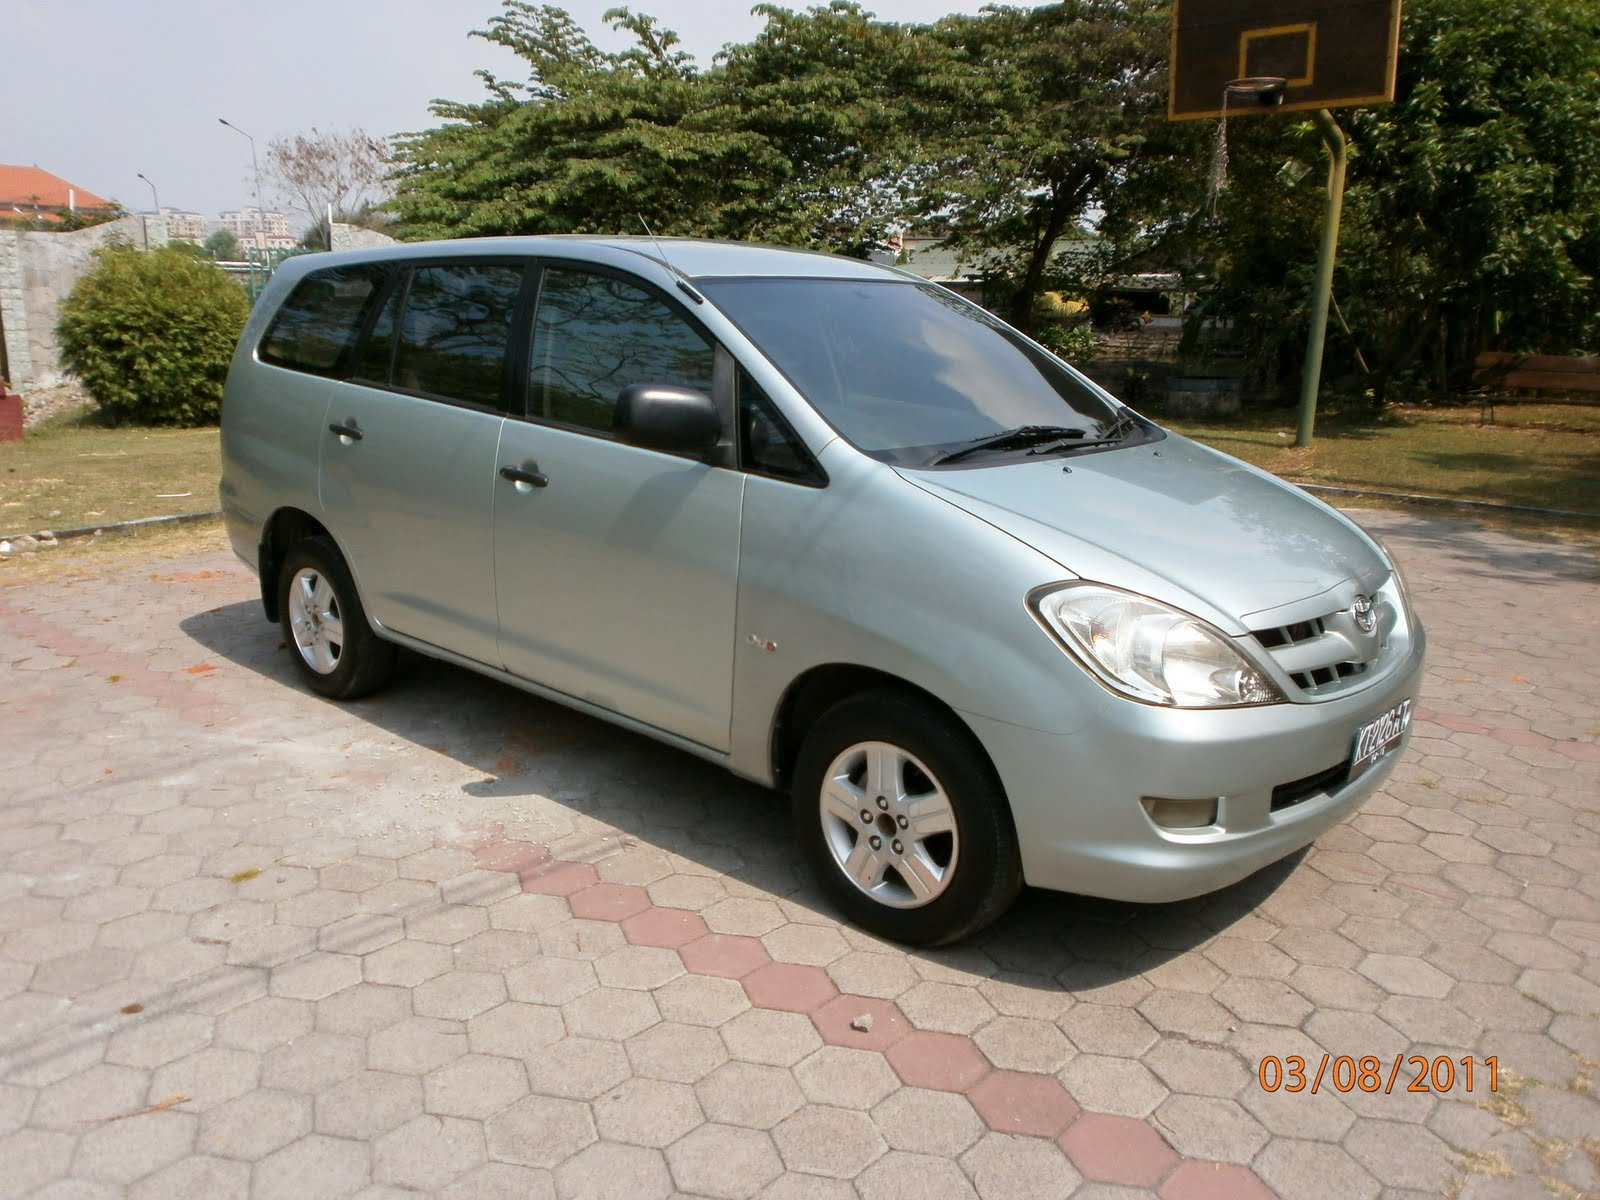 Top Speed All New Kijang Innova Grand Avanza G 1.3 2006 Toyota 2 5 Diesel Automatic Related